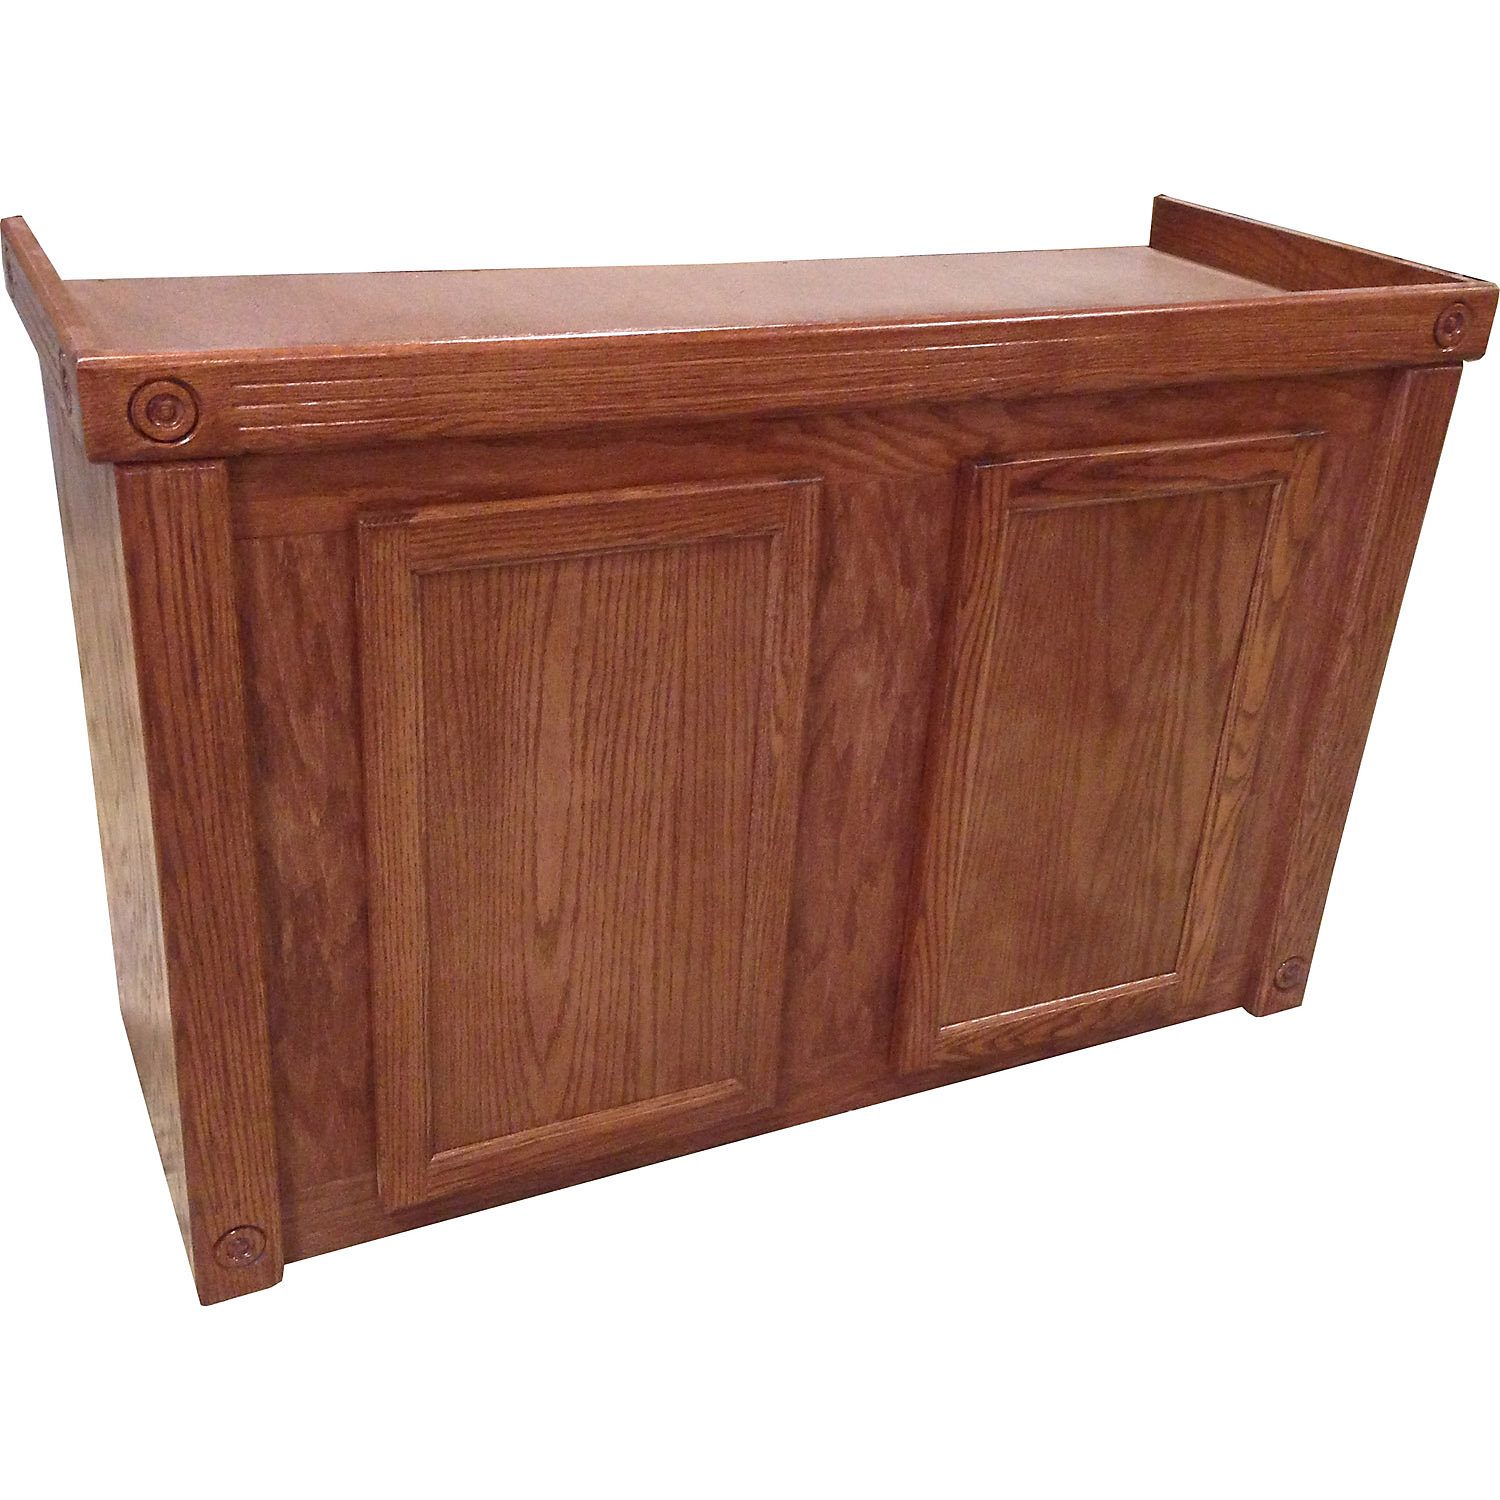 RJ Enterprises 48x18 Cherry Oak Empire Cabinet  for 75 90 and 110 Gallon Glass Aquariums 48.75 IN Brown